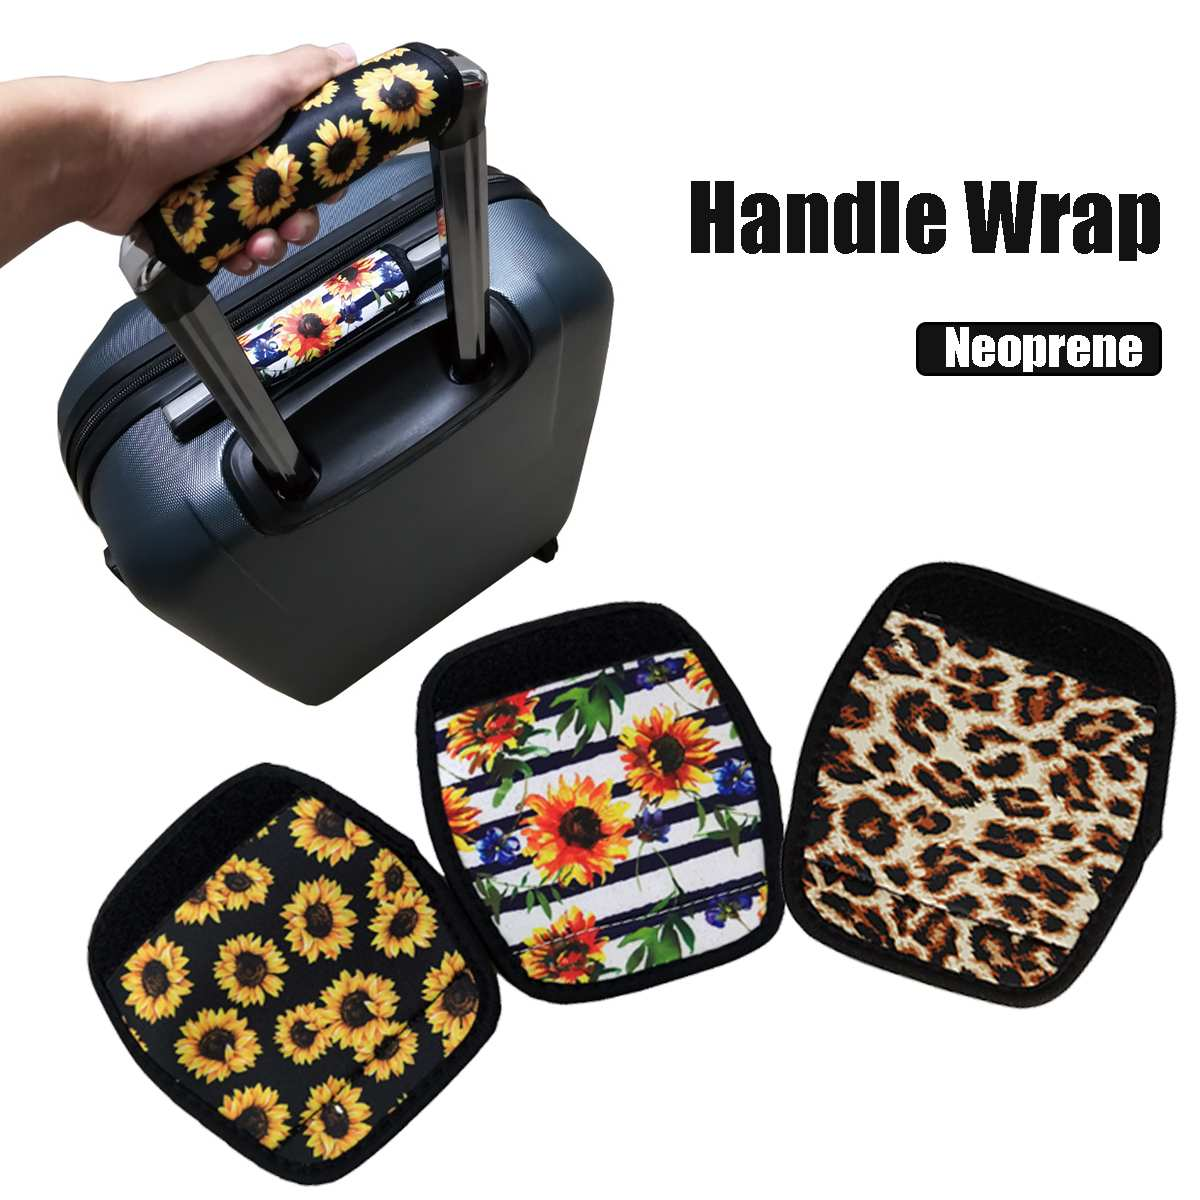 Comfortable Light Neoprene Handle Wraps/Grip/Identifier For Travel Bag Luggage Suitcase Fit Any Luggage Handle Adhesive Tape